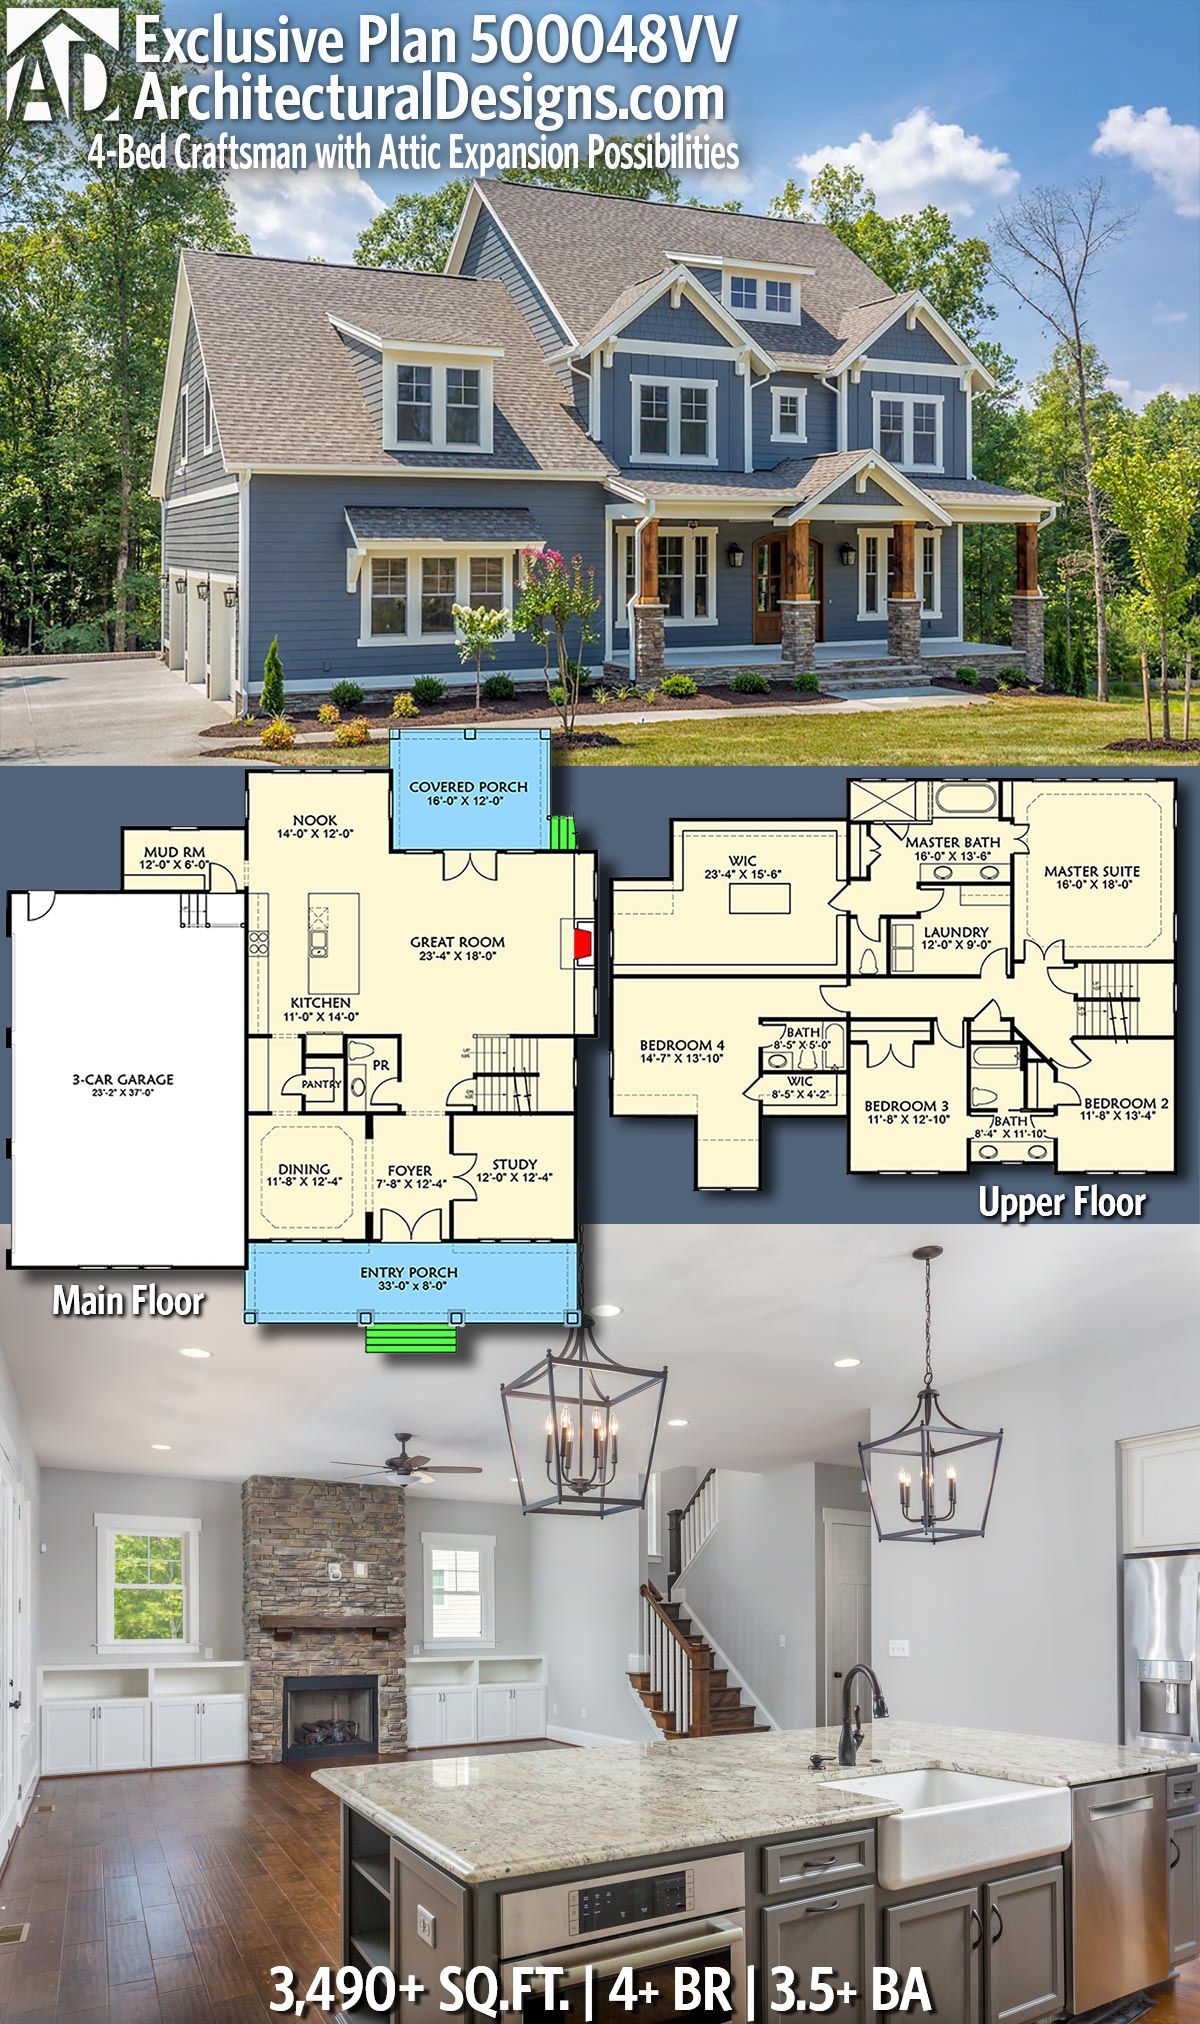 Plan vv bed craftsman with attic expansion possibilities